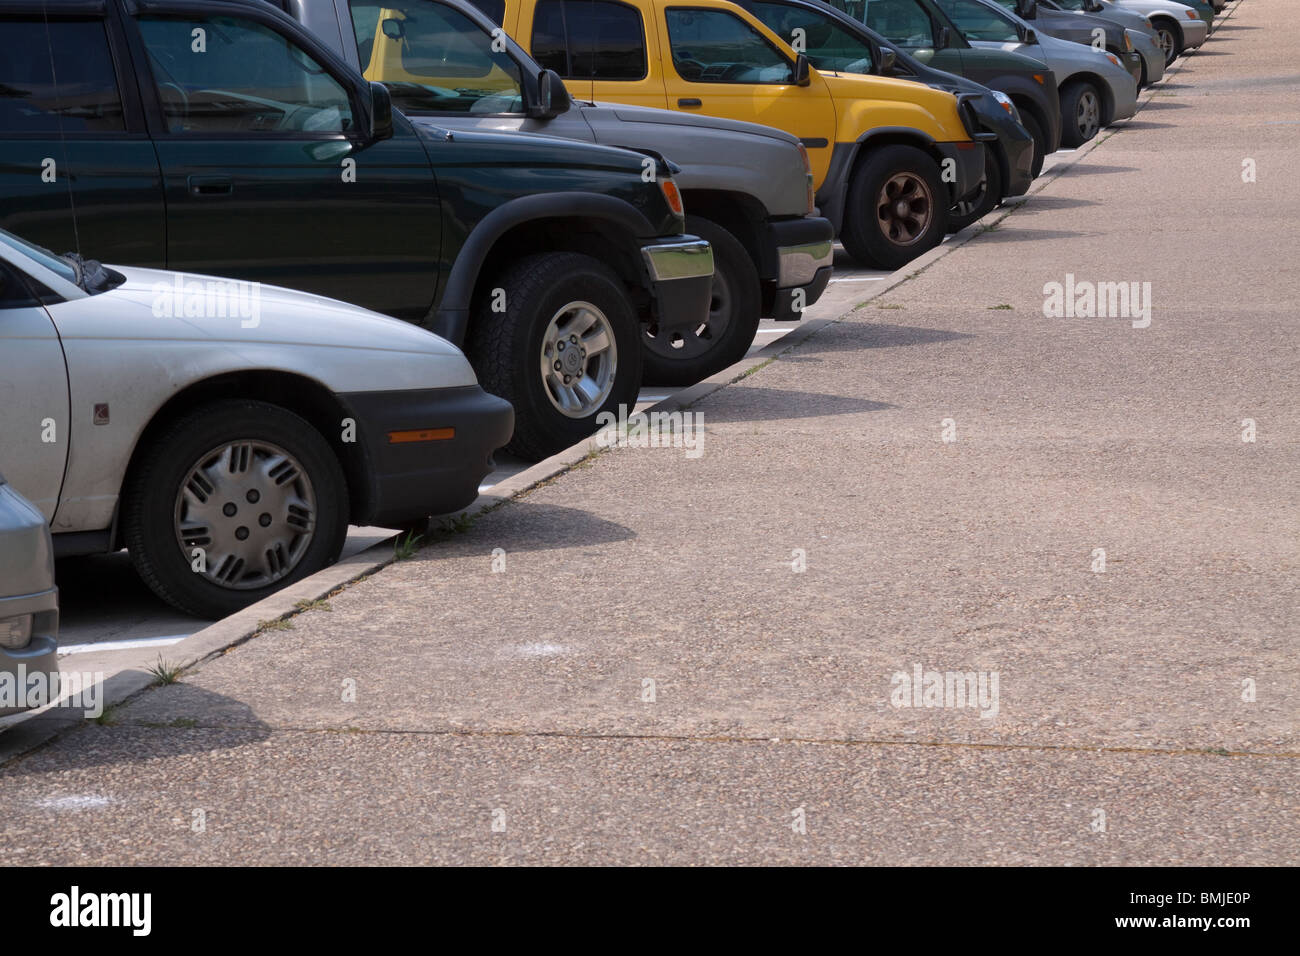 Row of cars and SUVs diagonally parked along a curb with a bright yellow SUV in the middle. - Stock Image